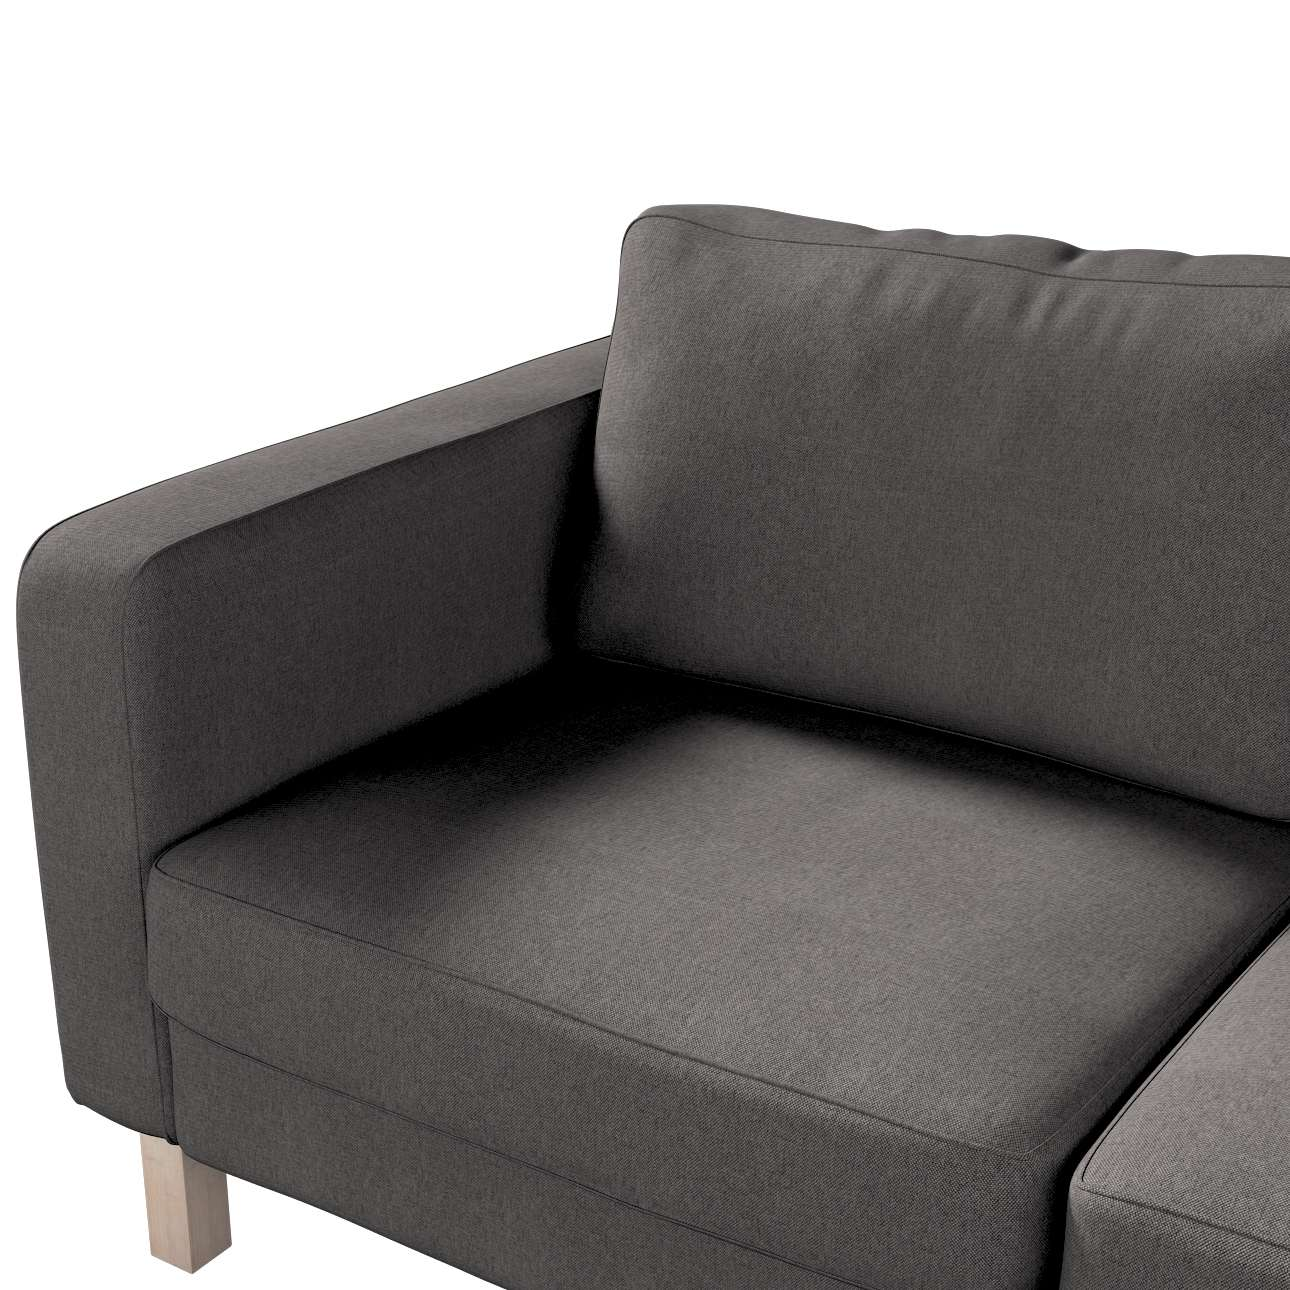 Karlstad 2-seater sofa cover in collection Etna, fabric: 705-35